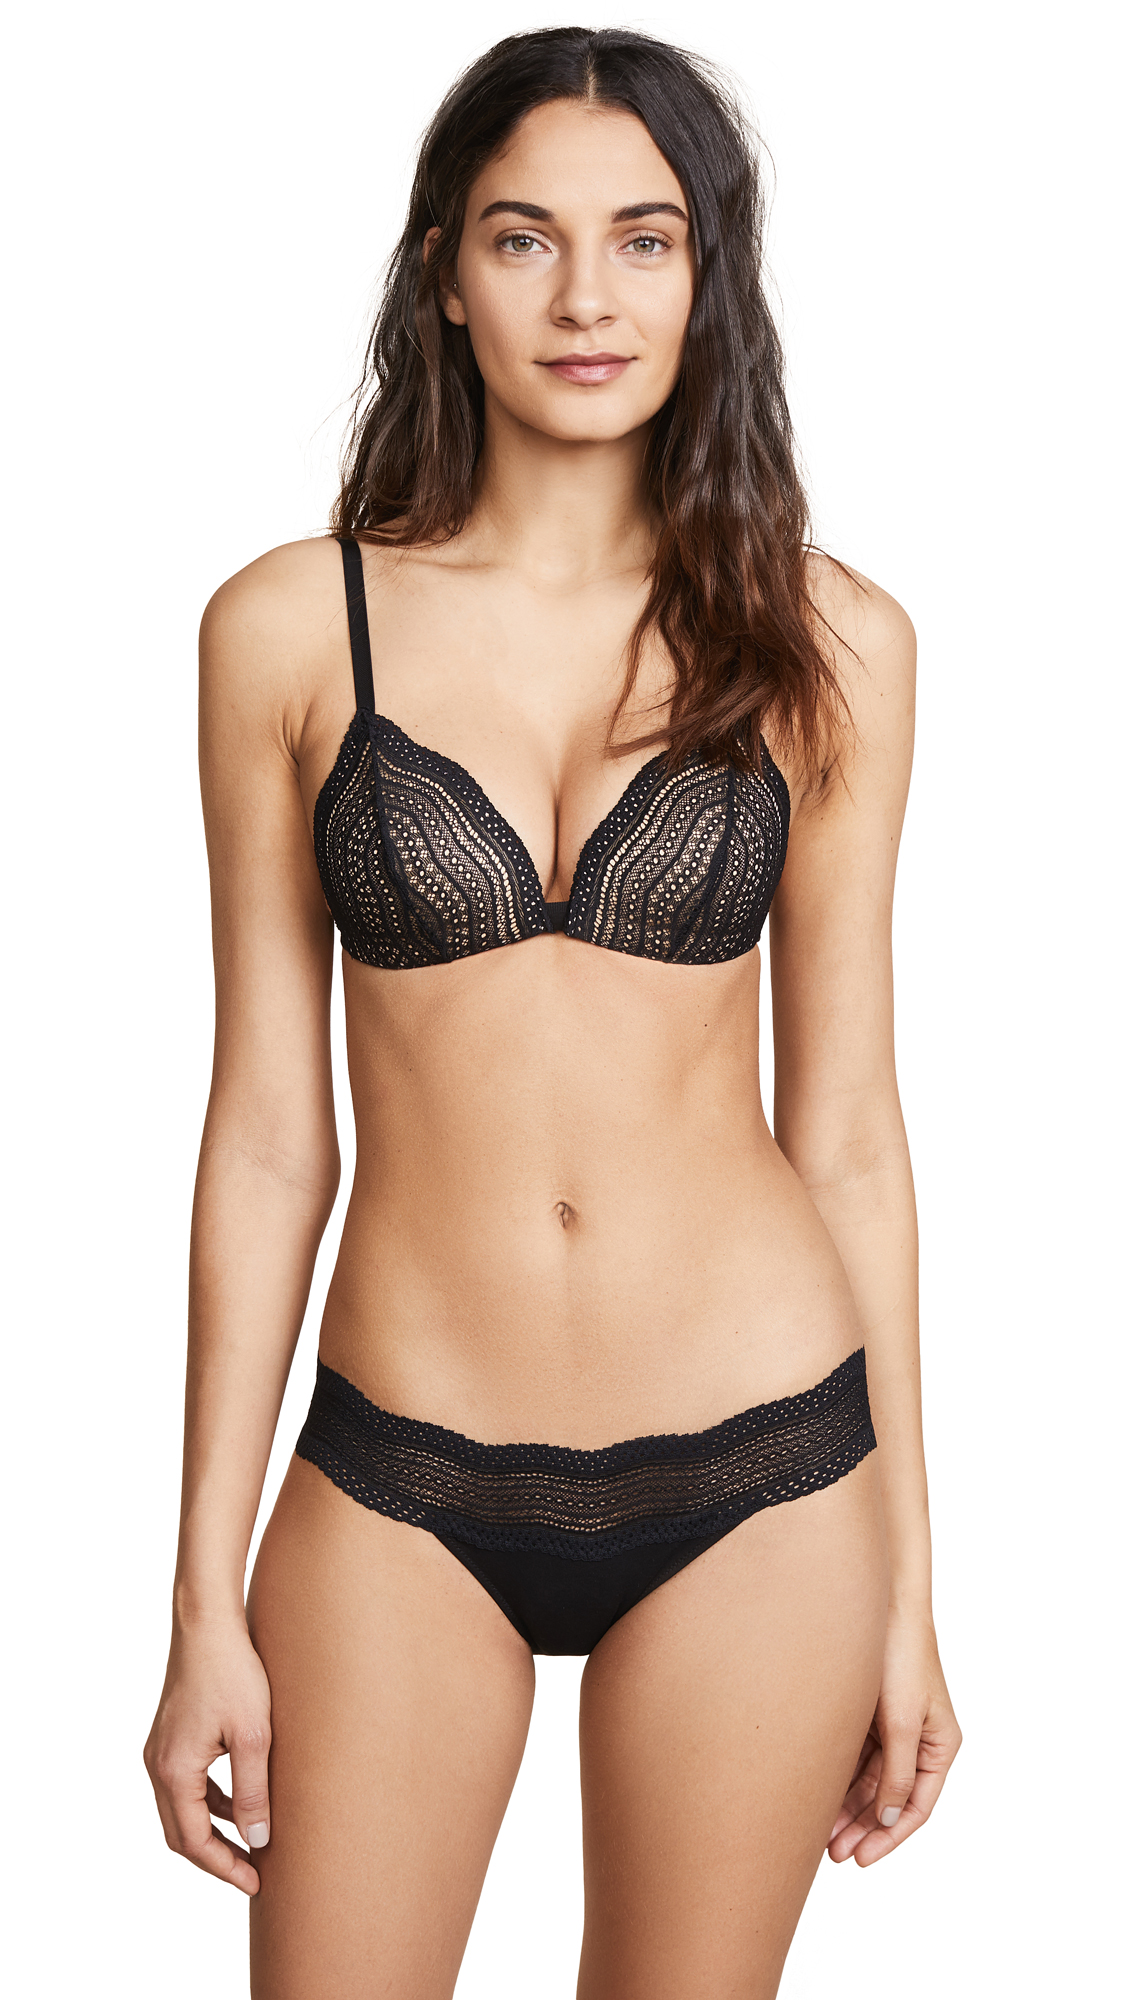 Cosabella Dolce Triangle Soft Push Up Bra - Black